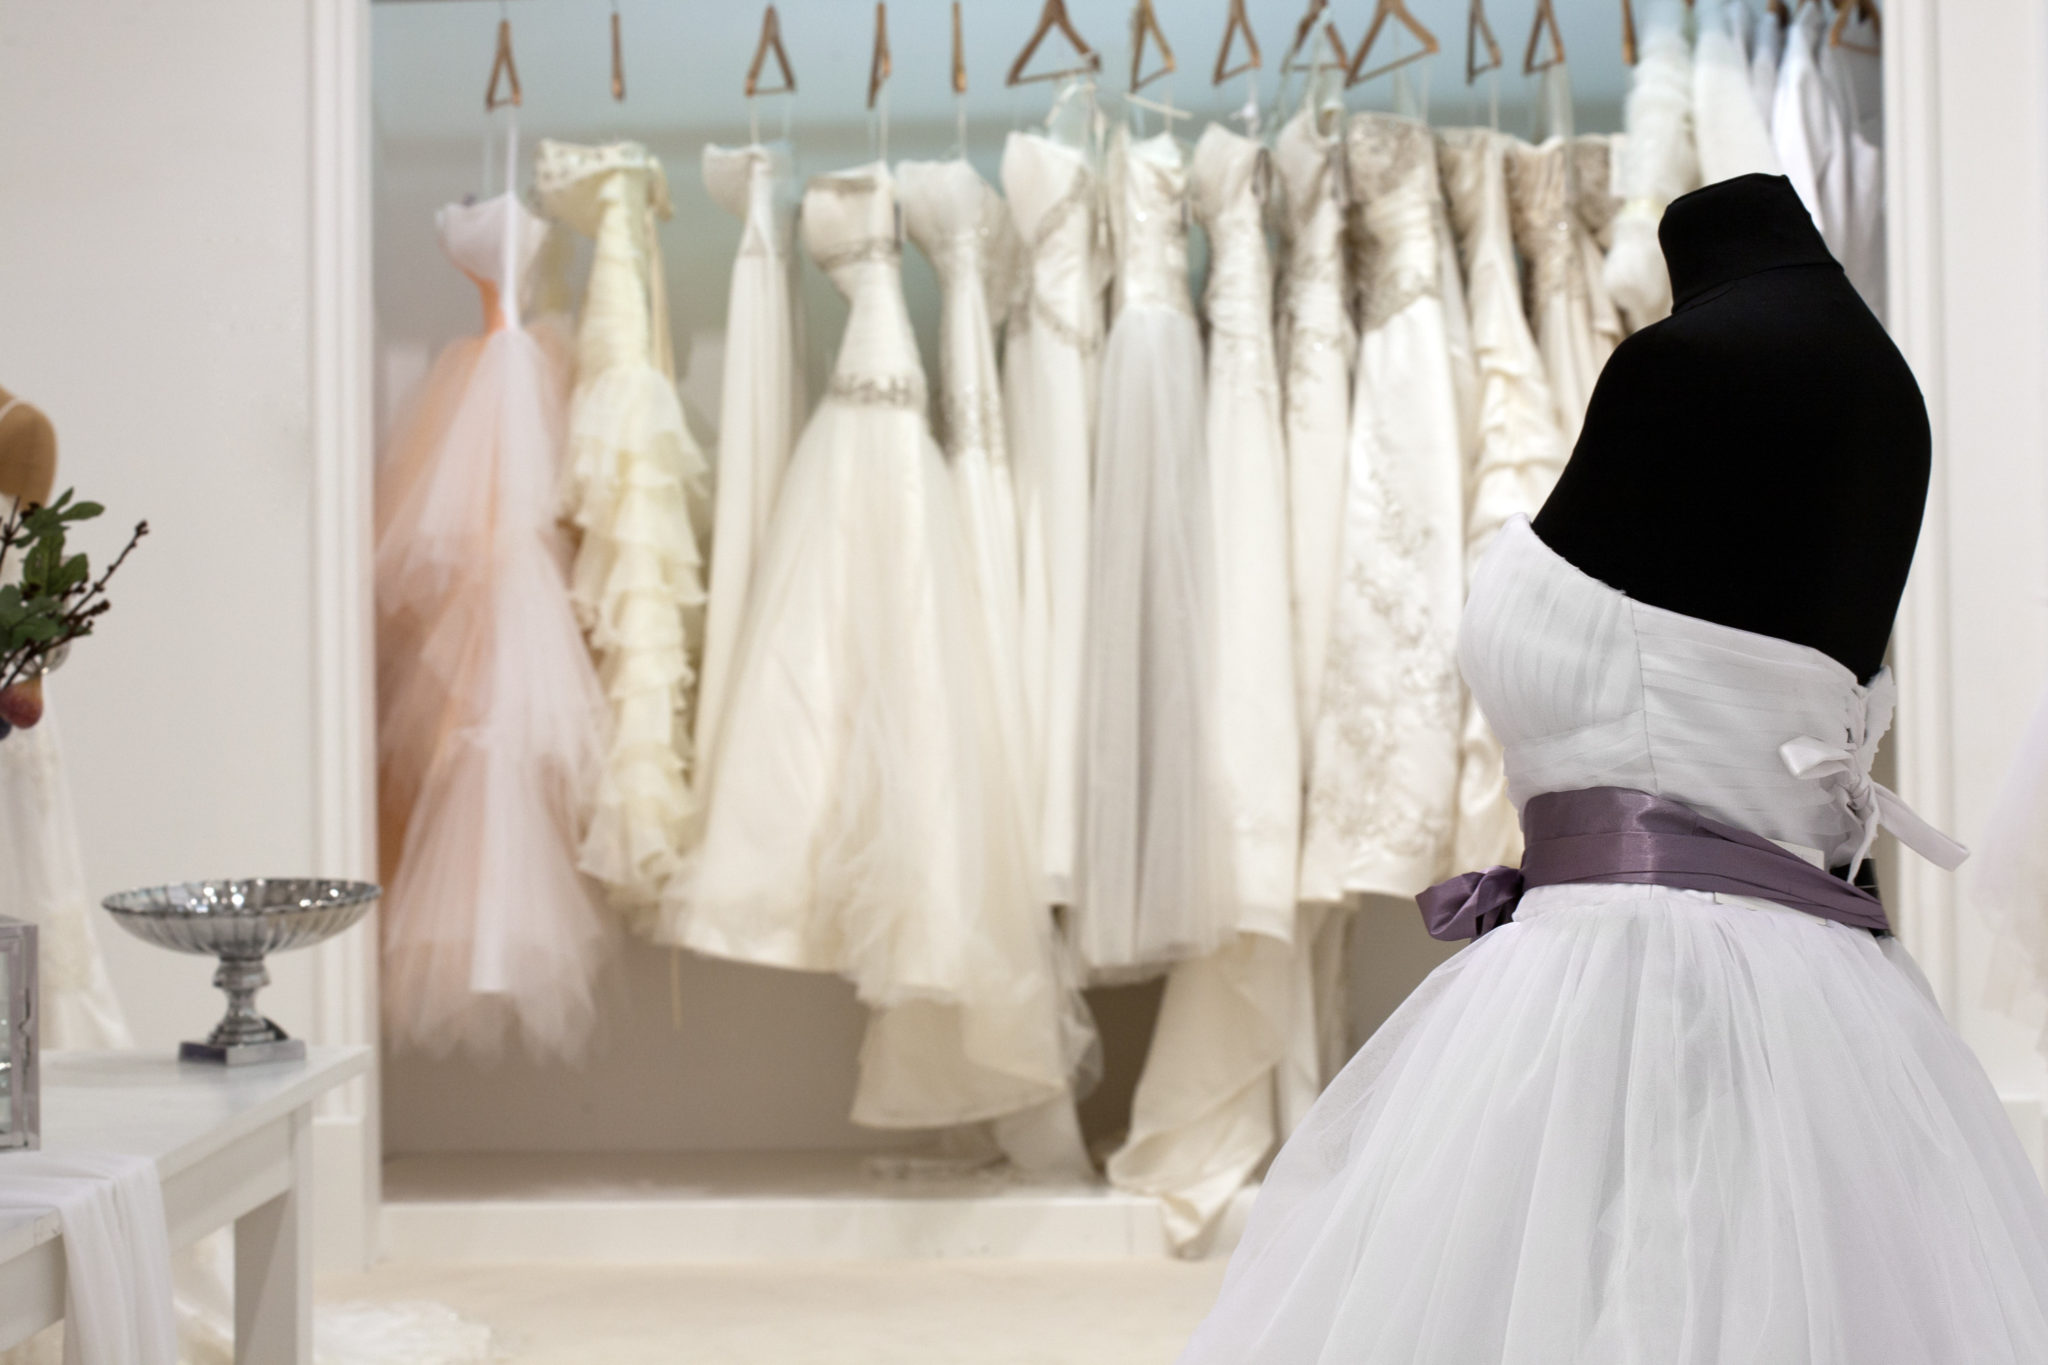 guide best wedding day undergarments wedding dress undergarments Consider what type of dress you have in mind and plan accordingly You wouldn t want to wear an over the shoulder bra under your strapless wedding